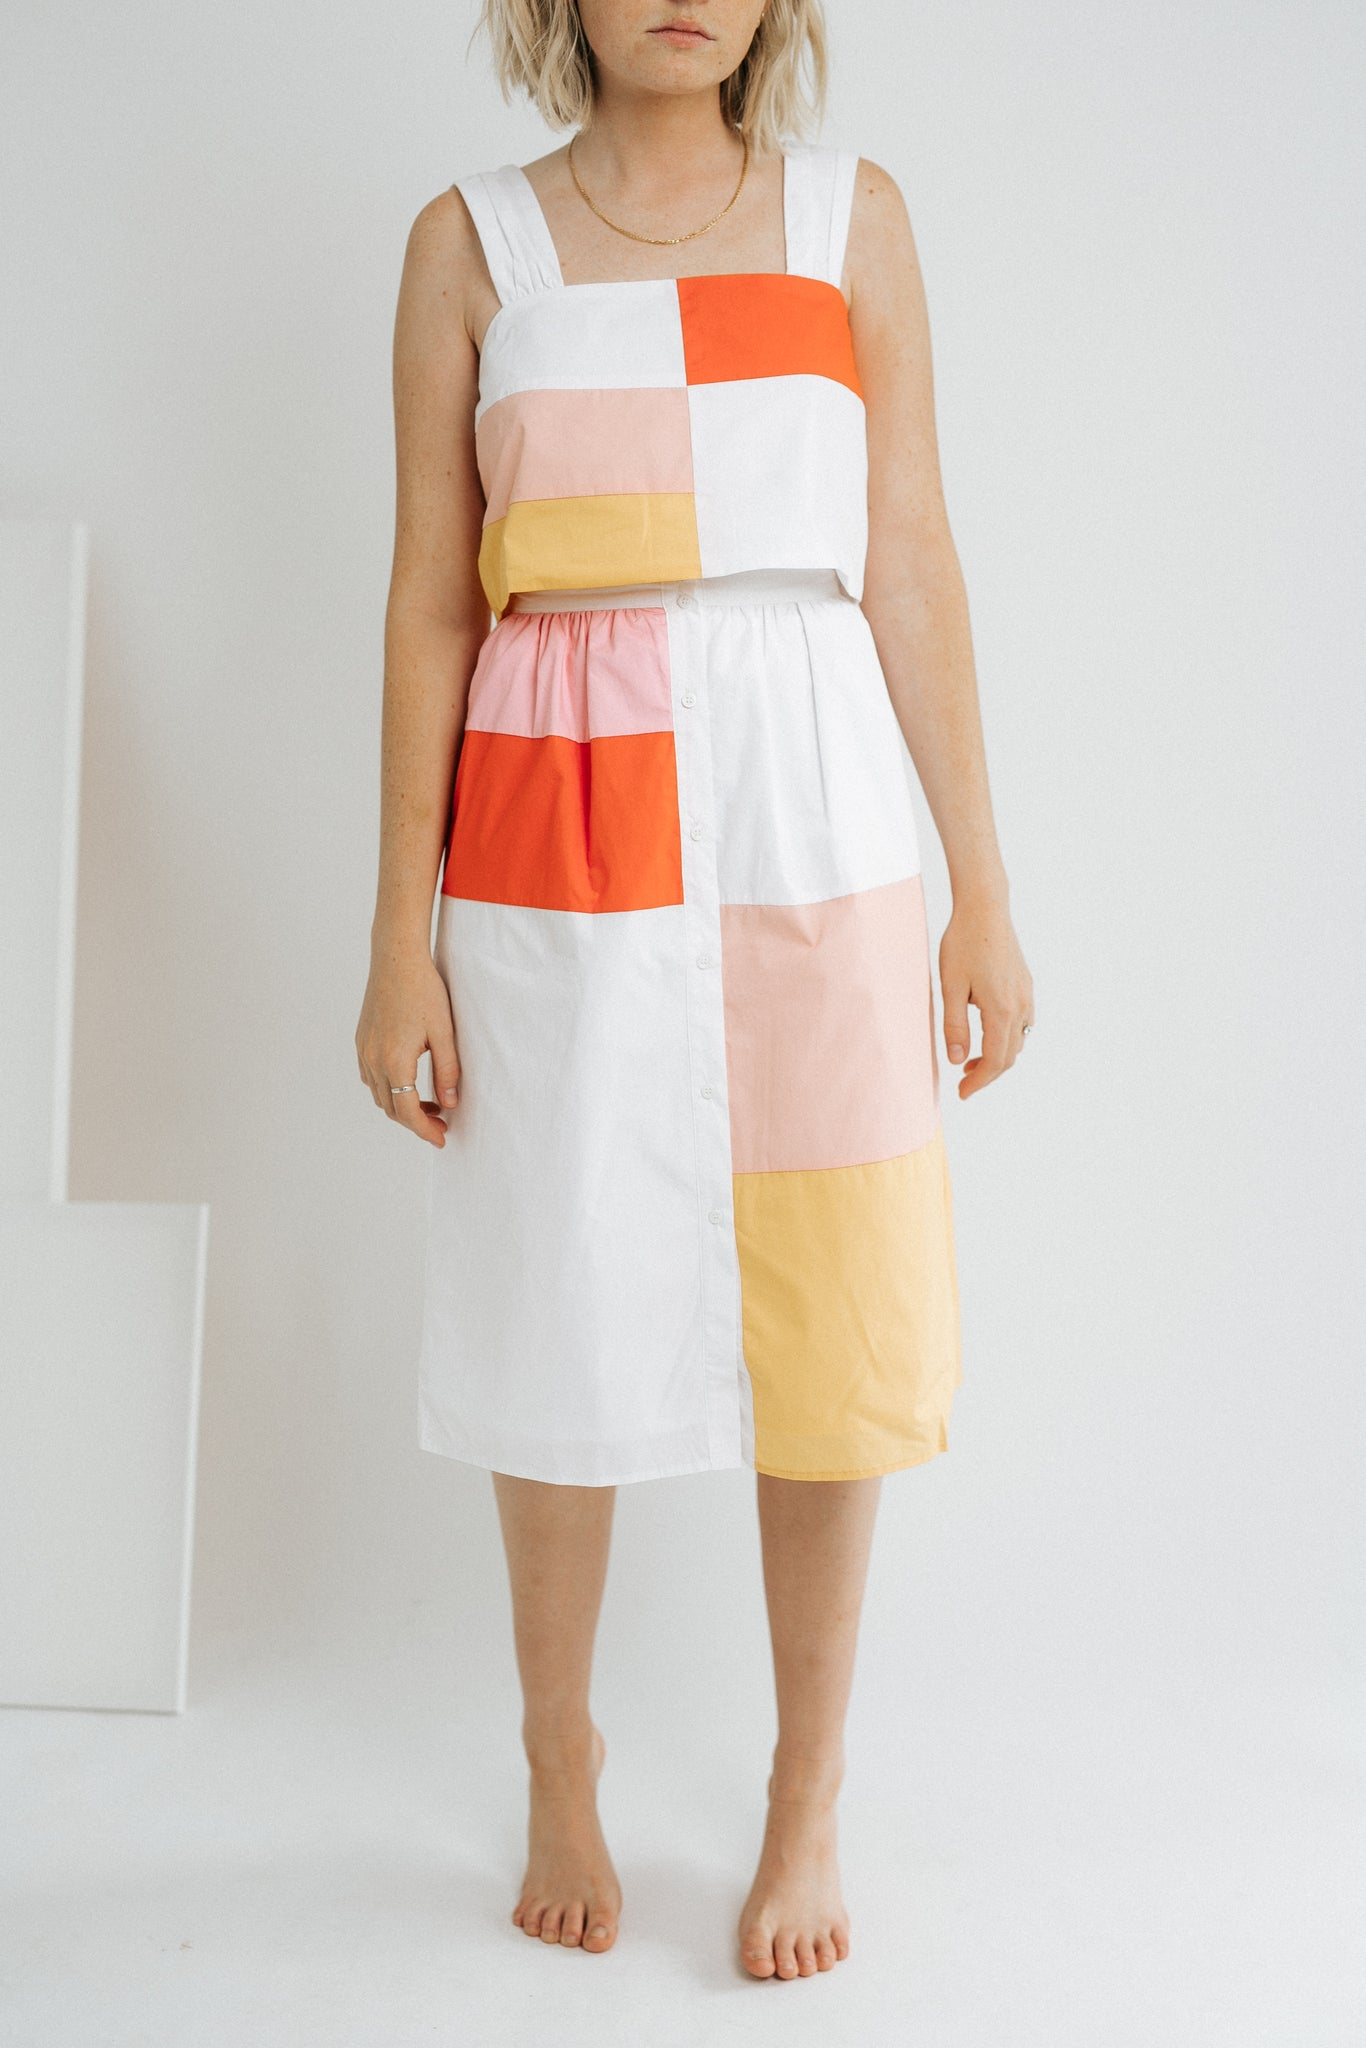 The Colorblock Skirt